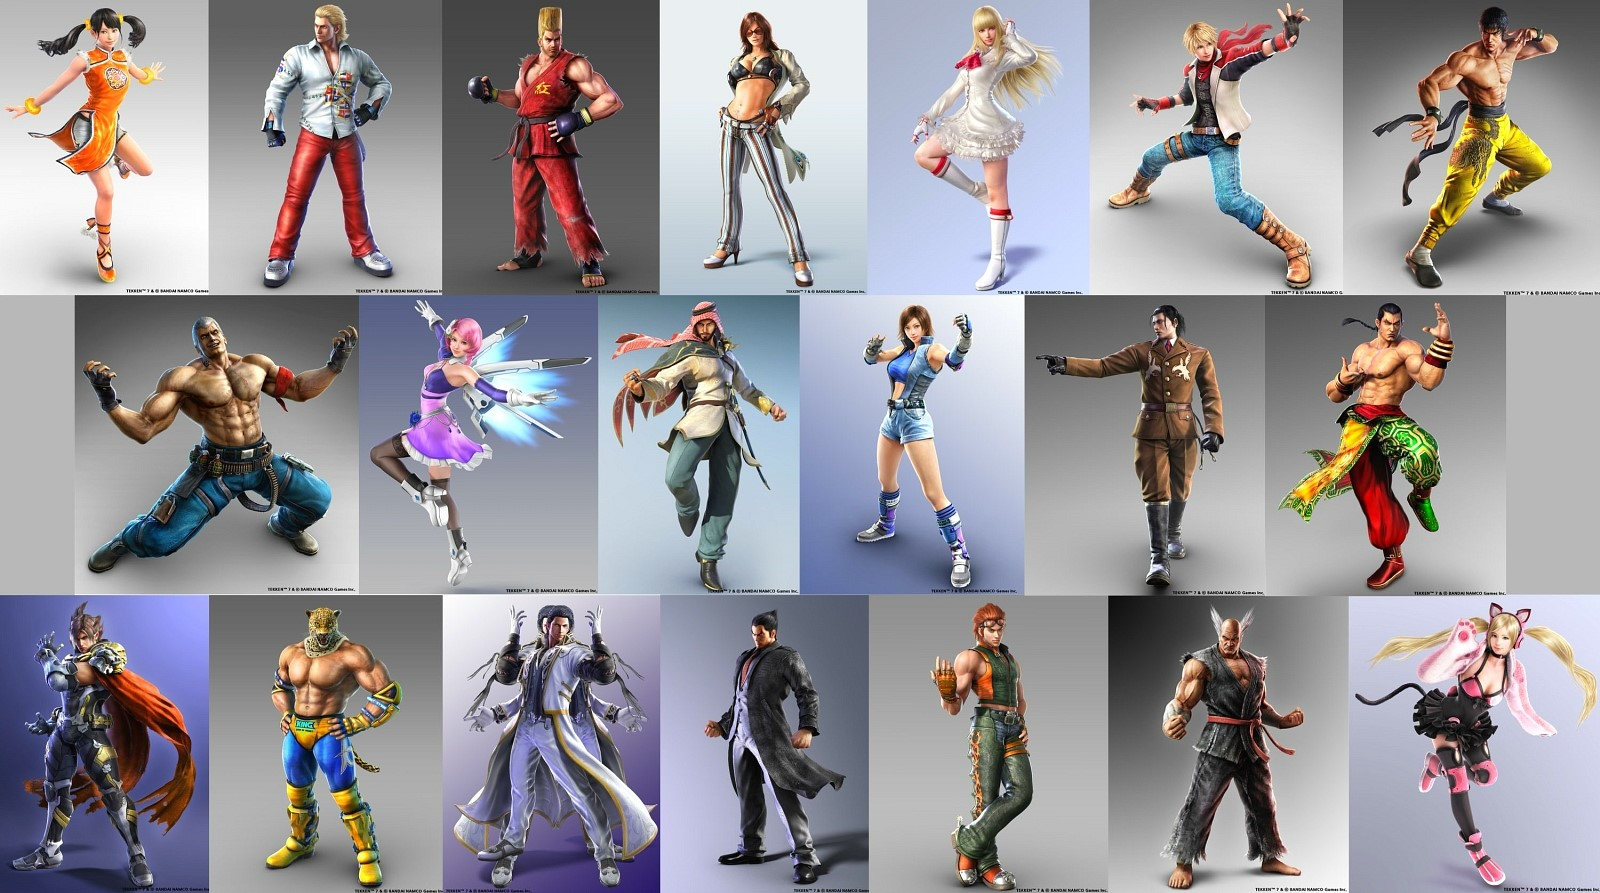 Tekken 7 New Cgi Renders For The Current Roster News Avoiding The Puddle